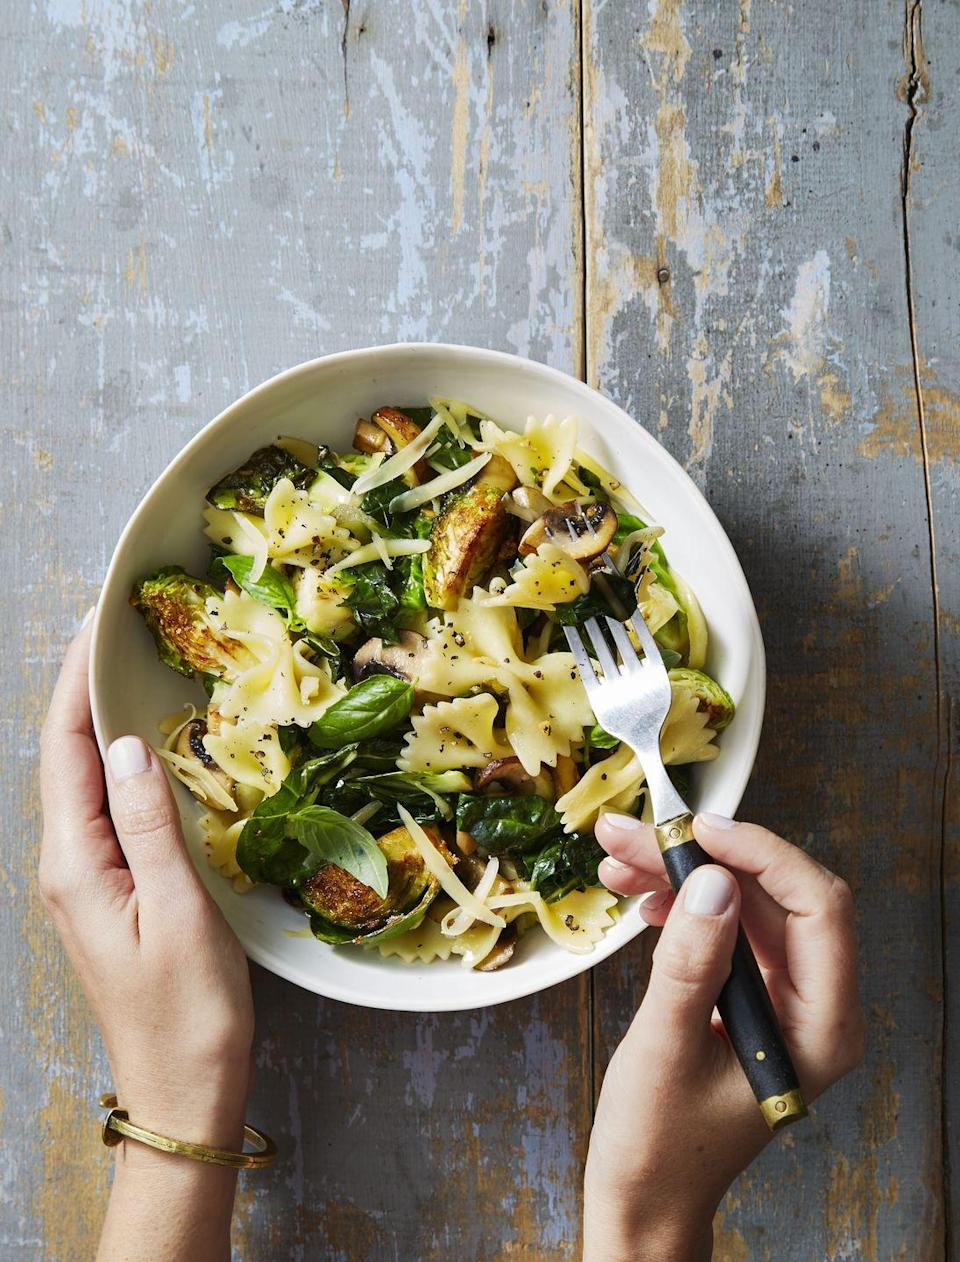 """<p>Here's a great way to get your holiday fix of Brussels sprouts: Mix them into a delicious, hearty <a href=""""https://www.goodhousekeeping.com/food-recipes/easy/g2341/pasta-recipes-with-5-ingredients/"""" rel=""""nofollow noopener"""" target=""""_blank"""" data-ylk=""""slk:pasta dish"""" class=""""link rapid-noclick-resp"""">pasta dish</a>.</p><p><em><a href=""""https://www.goodhousekeeping.com/food-recipes/a40391/brussels-sprout-basil-bowties-recipe/"""" rel=""""nofollow noopener"""" target=""""_blank"""" data-ylk=""""slk:Get the recipe for Brussels Sprout & Basil Bowties »"""" class=""""link rapid-noclick-resp"""">Get the recipe for Brussels Sprout & Basil Bowties »</a></em> </p>"""